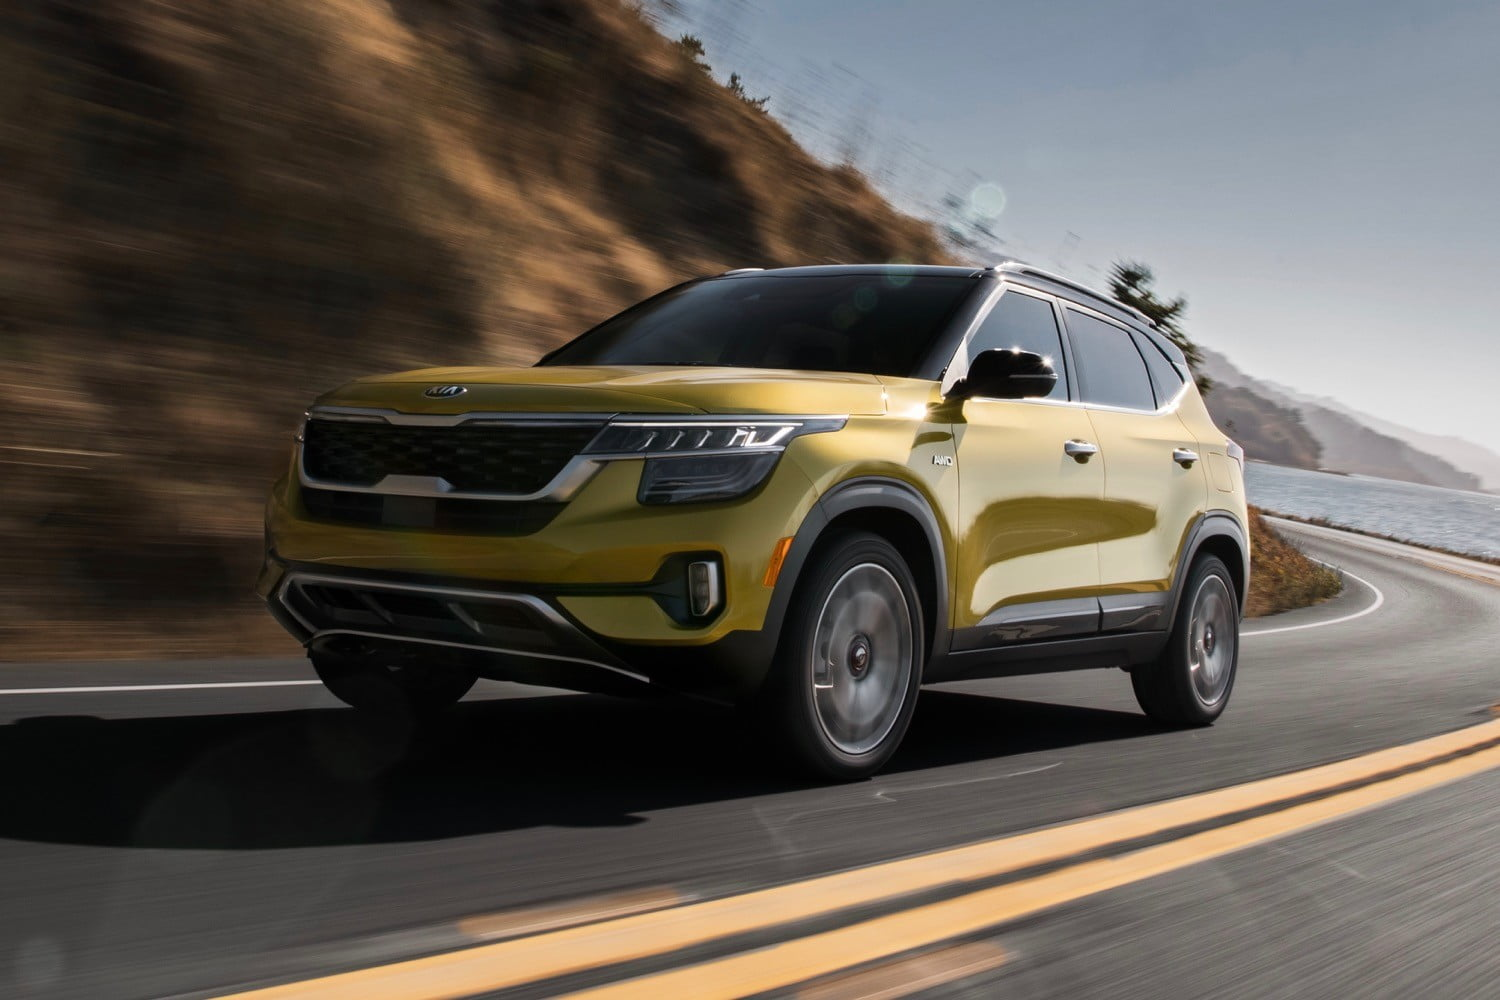 Pint-sized 2021 Kia Seltos crossover could be a great tech value